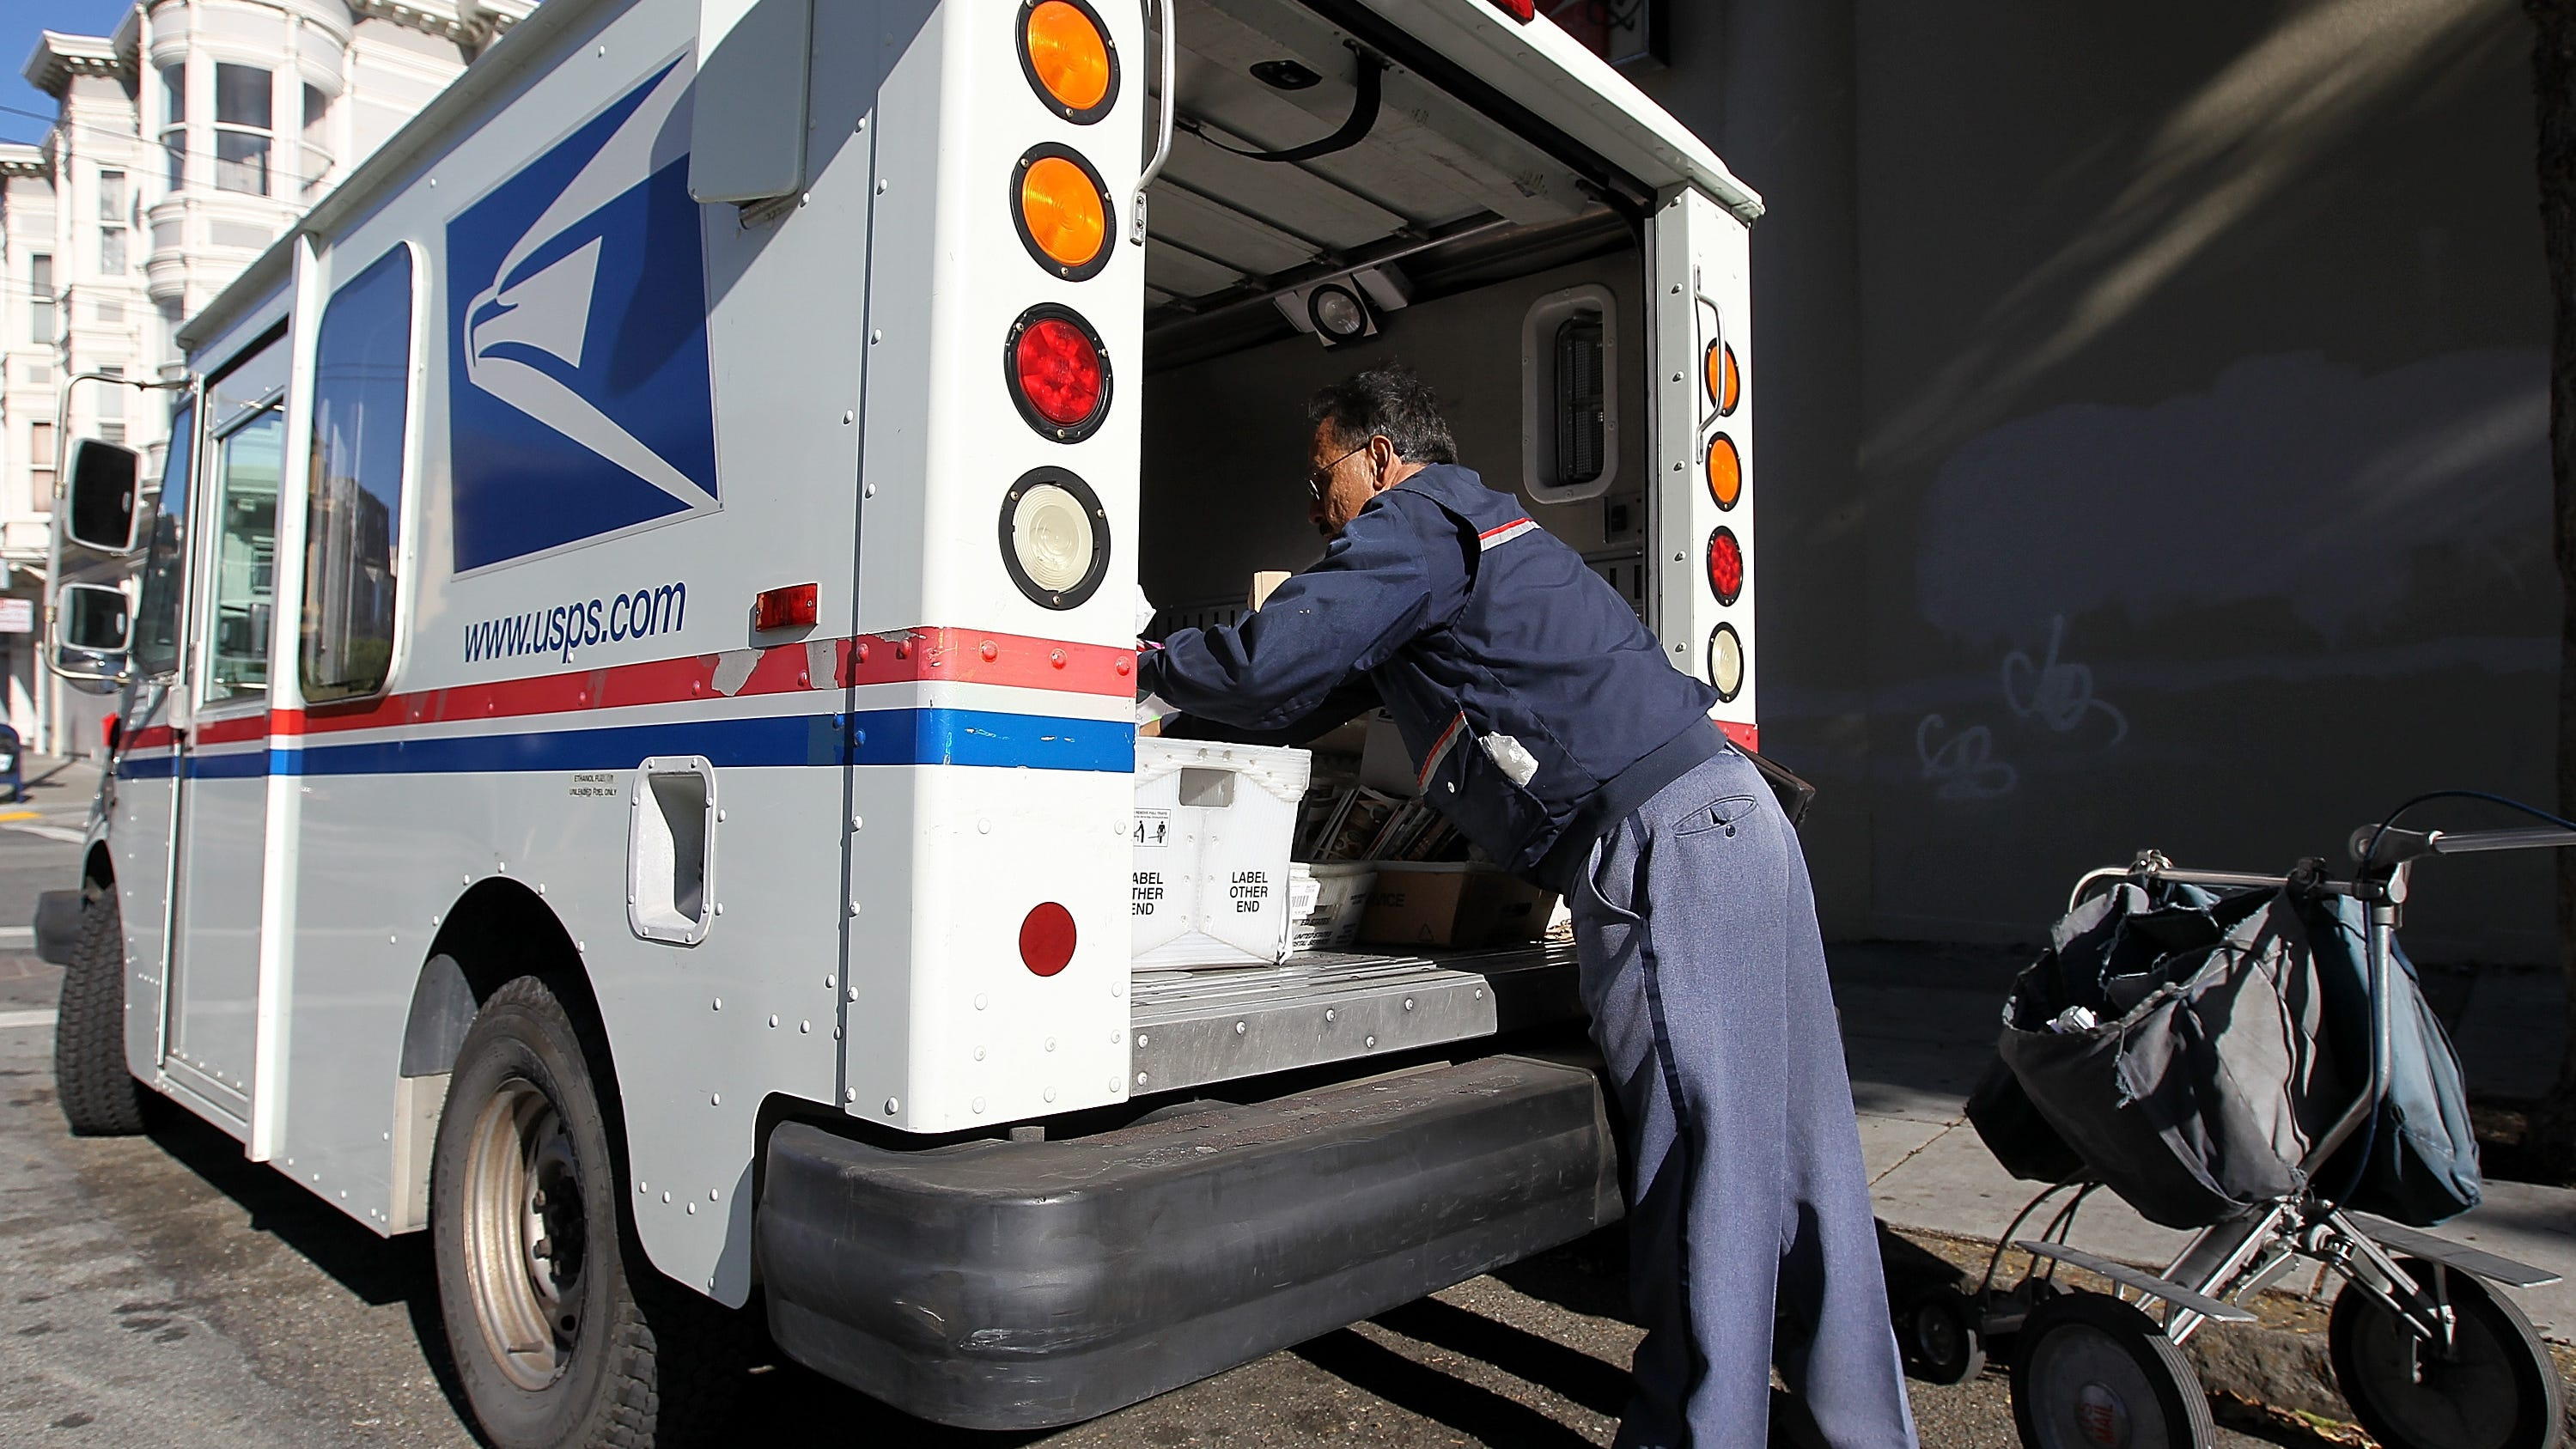 SAN FRANCISCO, CA - DECEMBER 05:  US Postal Service letter carrier Juan Padilla arranges mail in his truck while on his delivery route on December 5, 2011 in San Francisco, California. The US Postal Service announced today that they are considering a plan to eliminate the first class next-day delivery for stamped letters as well as closing half of its 487 mail processing plants across the country in an effort to cut costs and avoid bankruptcy.  (Photo by Justin Sullivan/Getty Images)